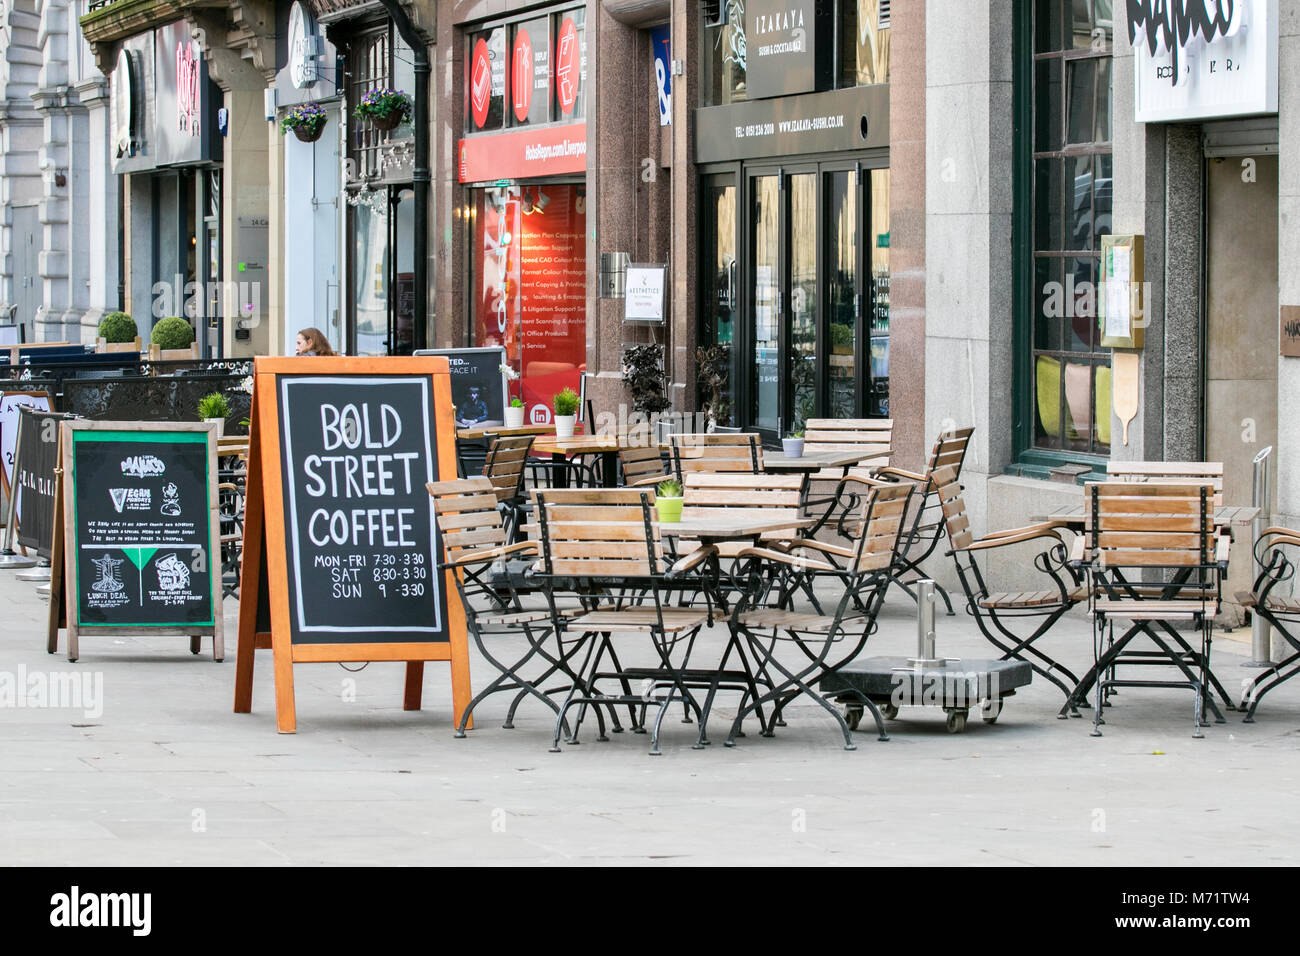 bold street Liverpool city centre outdoor alfresco tables chairs coffee shop cafe street cafeteria restaurant - Stock Image